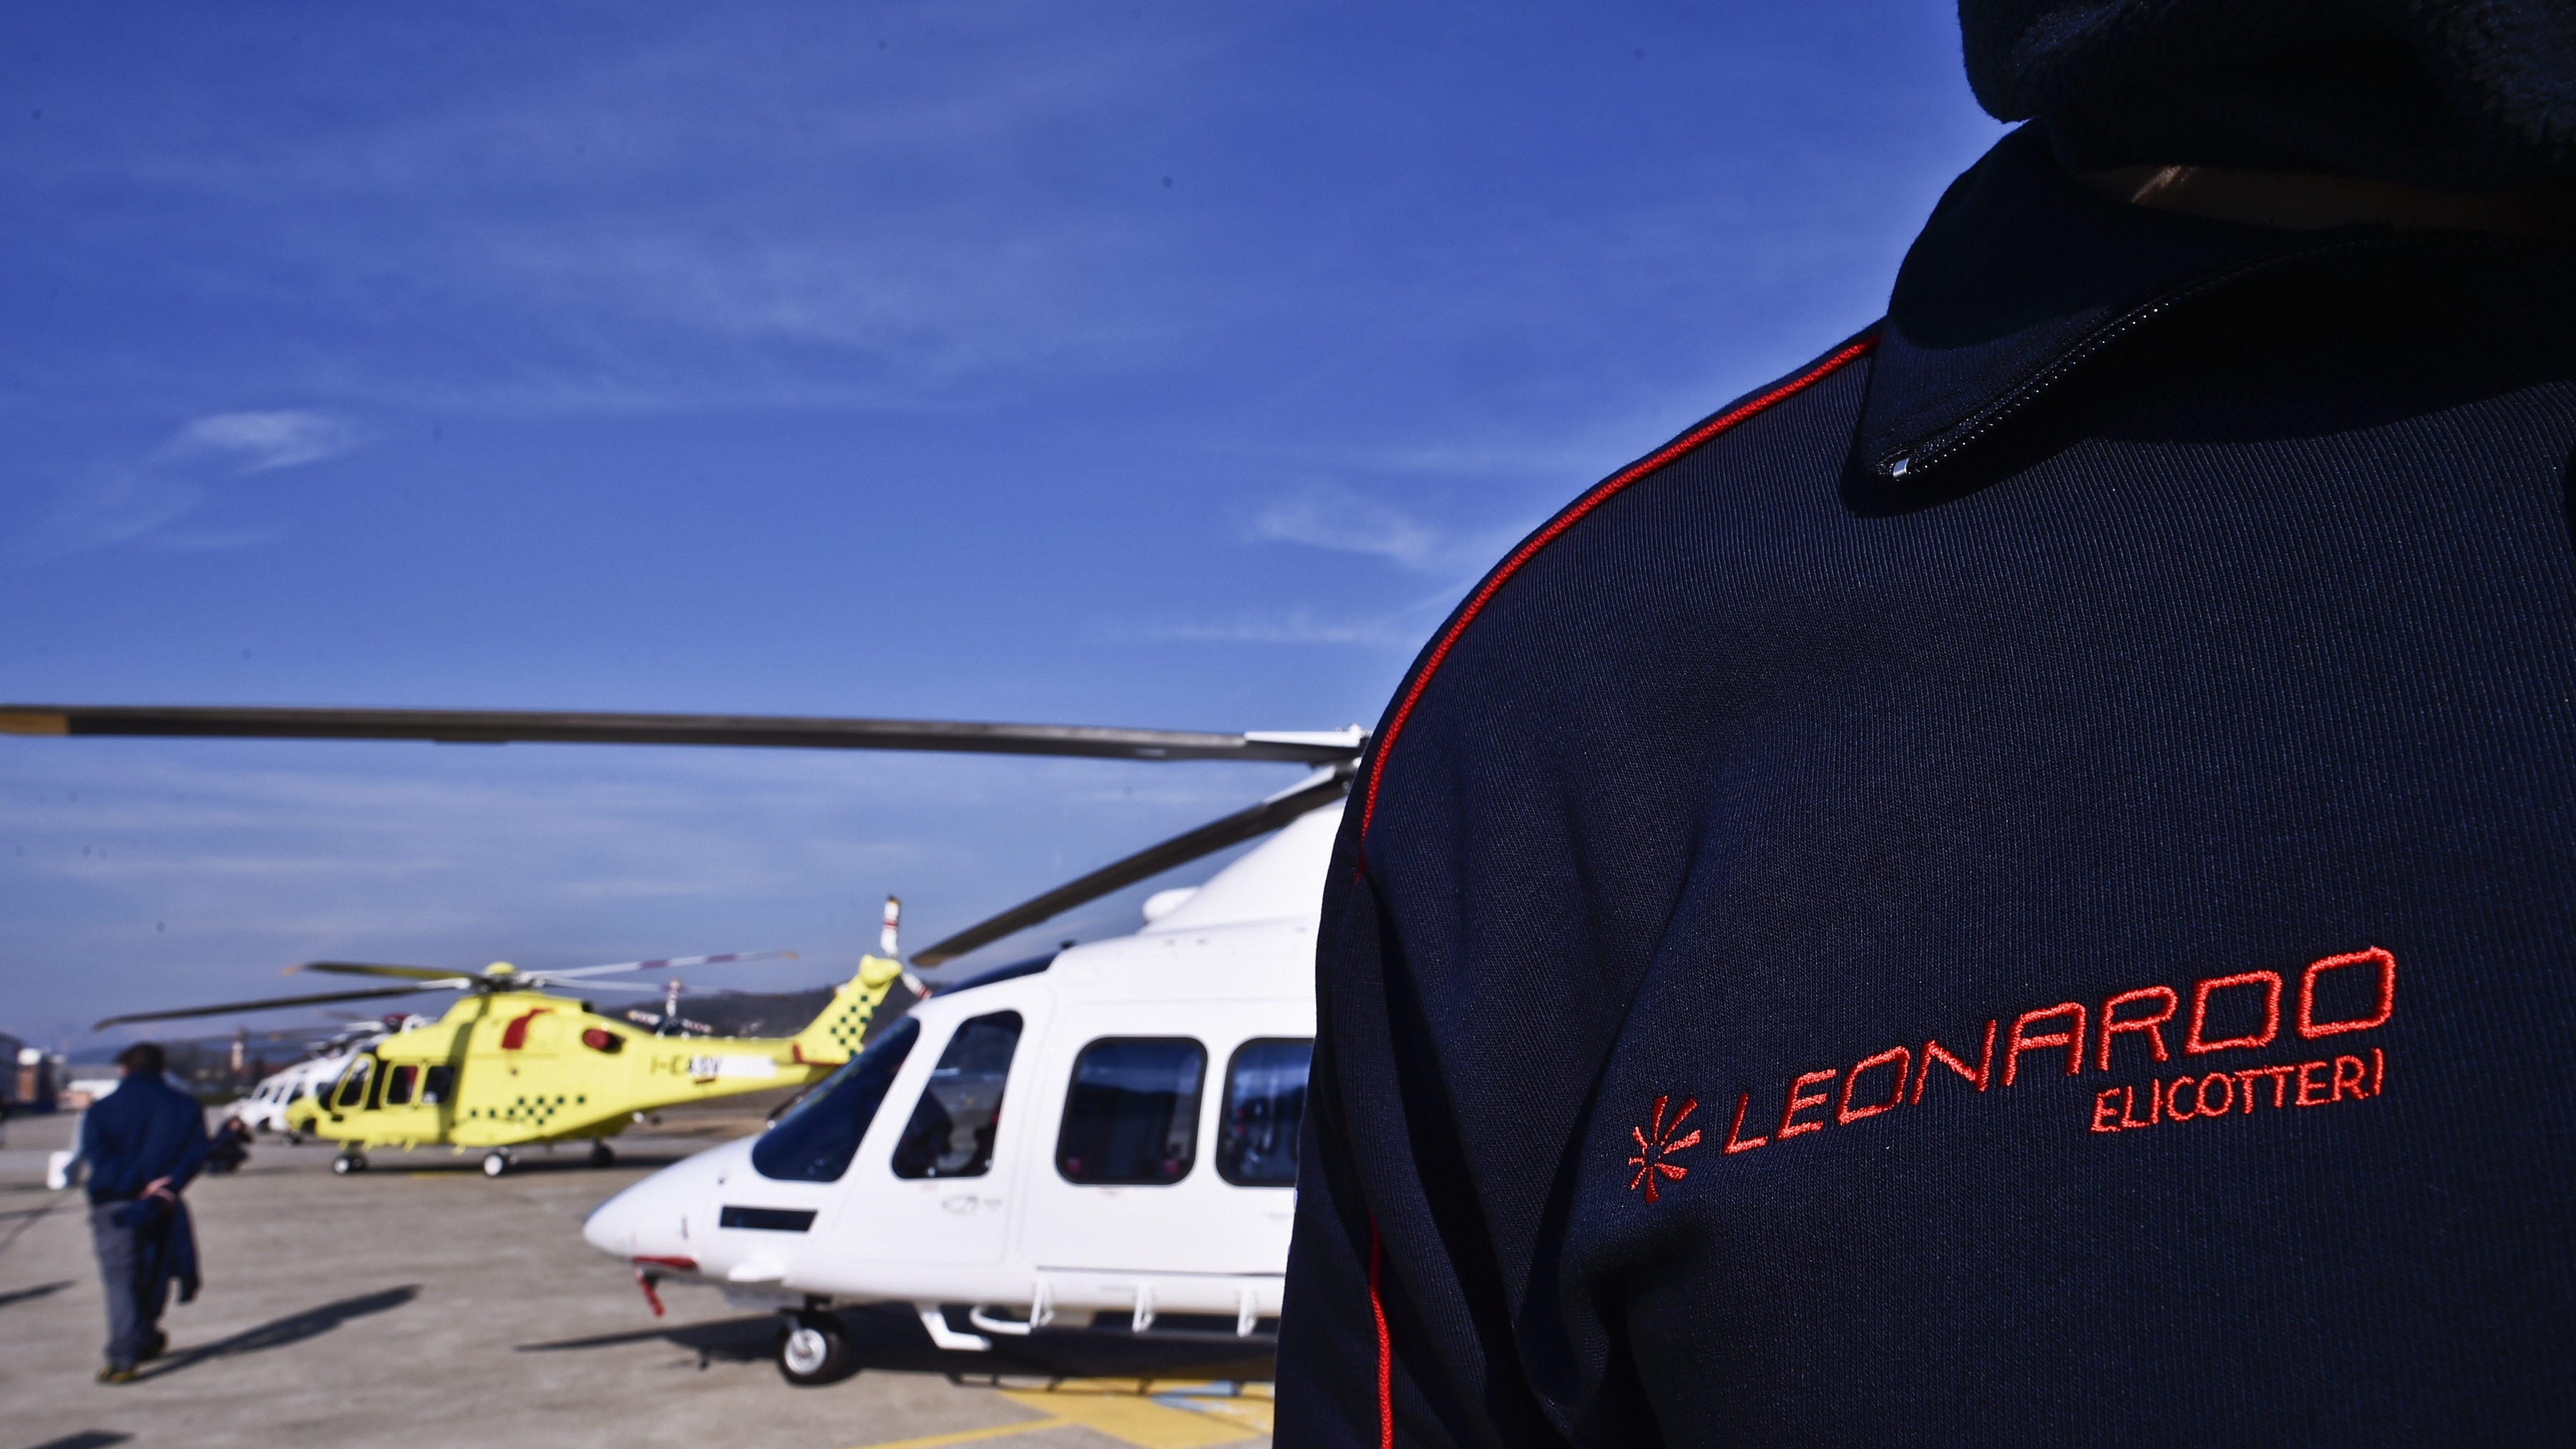 The logo of the Leonardo Helicopters division is seen on the jacket of an employee on Jan. 30, 2018, in Vergiate, near Milan. (Marco Bertorello/AFP via Getty Images)